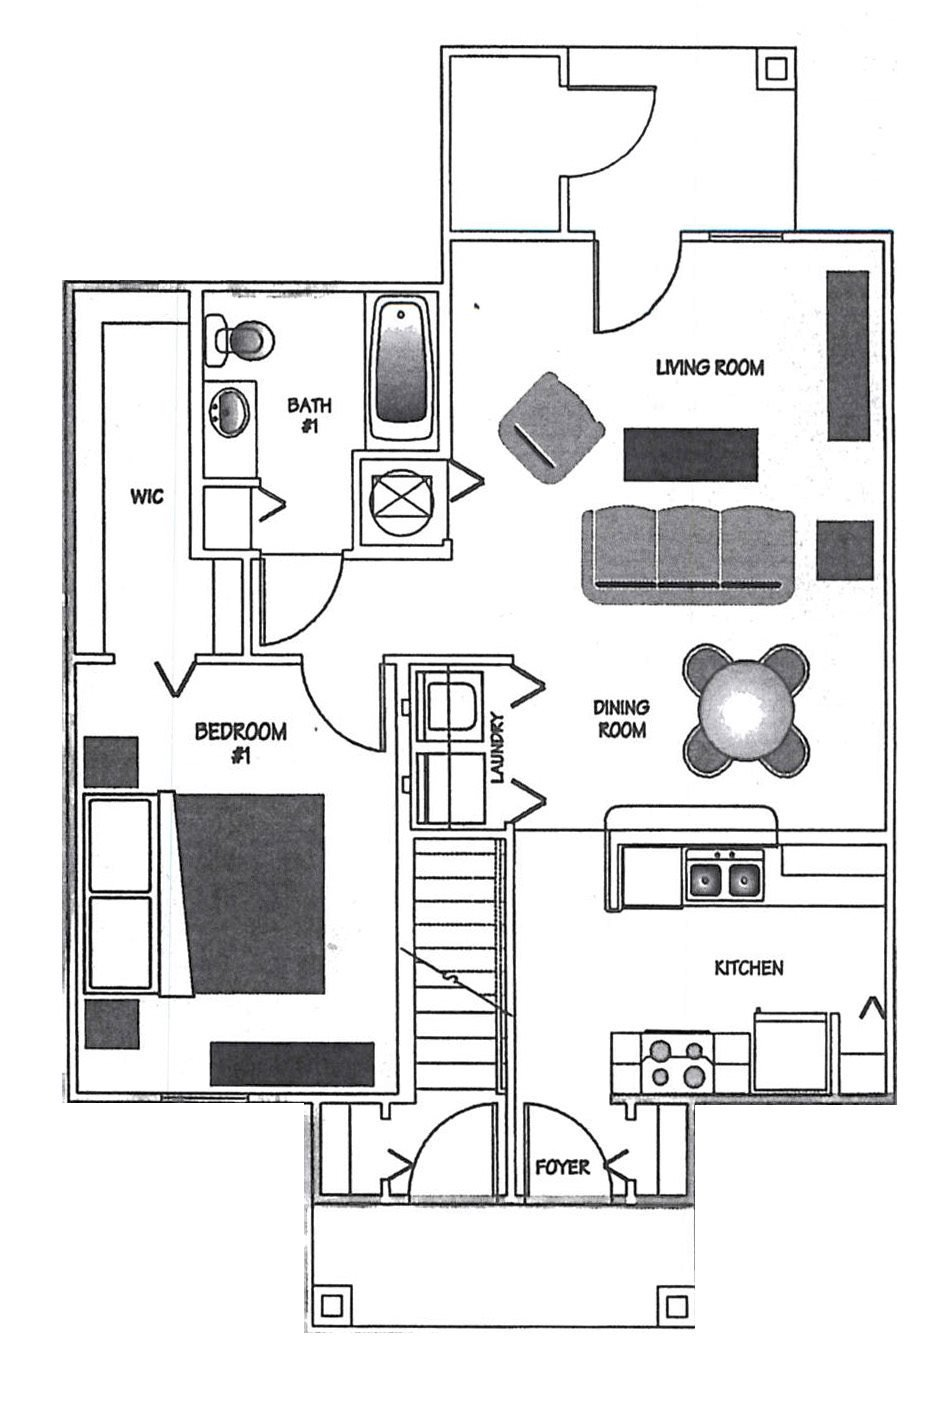 Floorplan at Palms at Lake Tulane, 1033 Hal McRae Loop, Avon Park, 33825